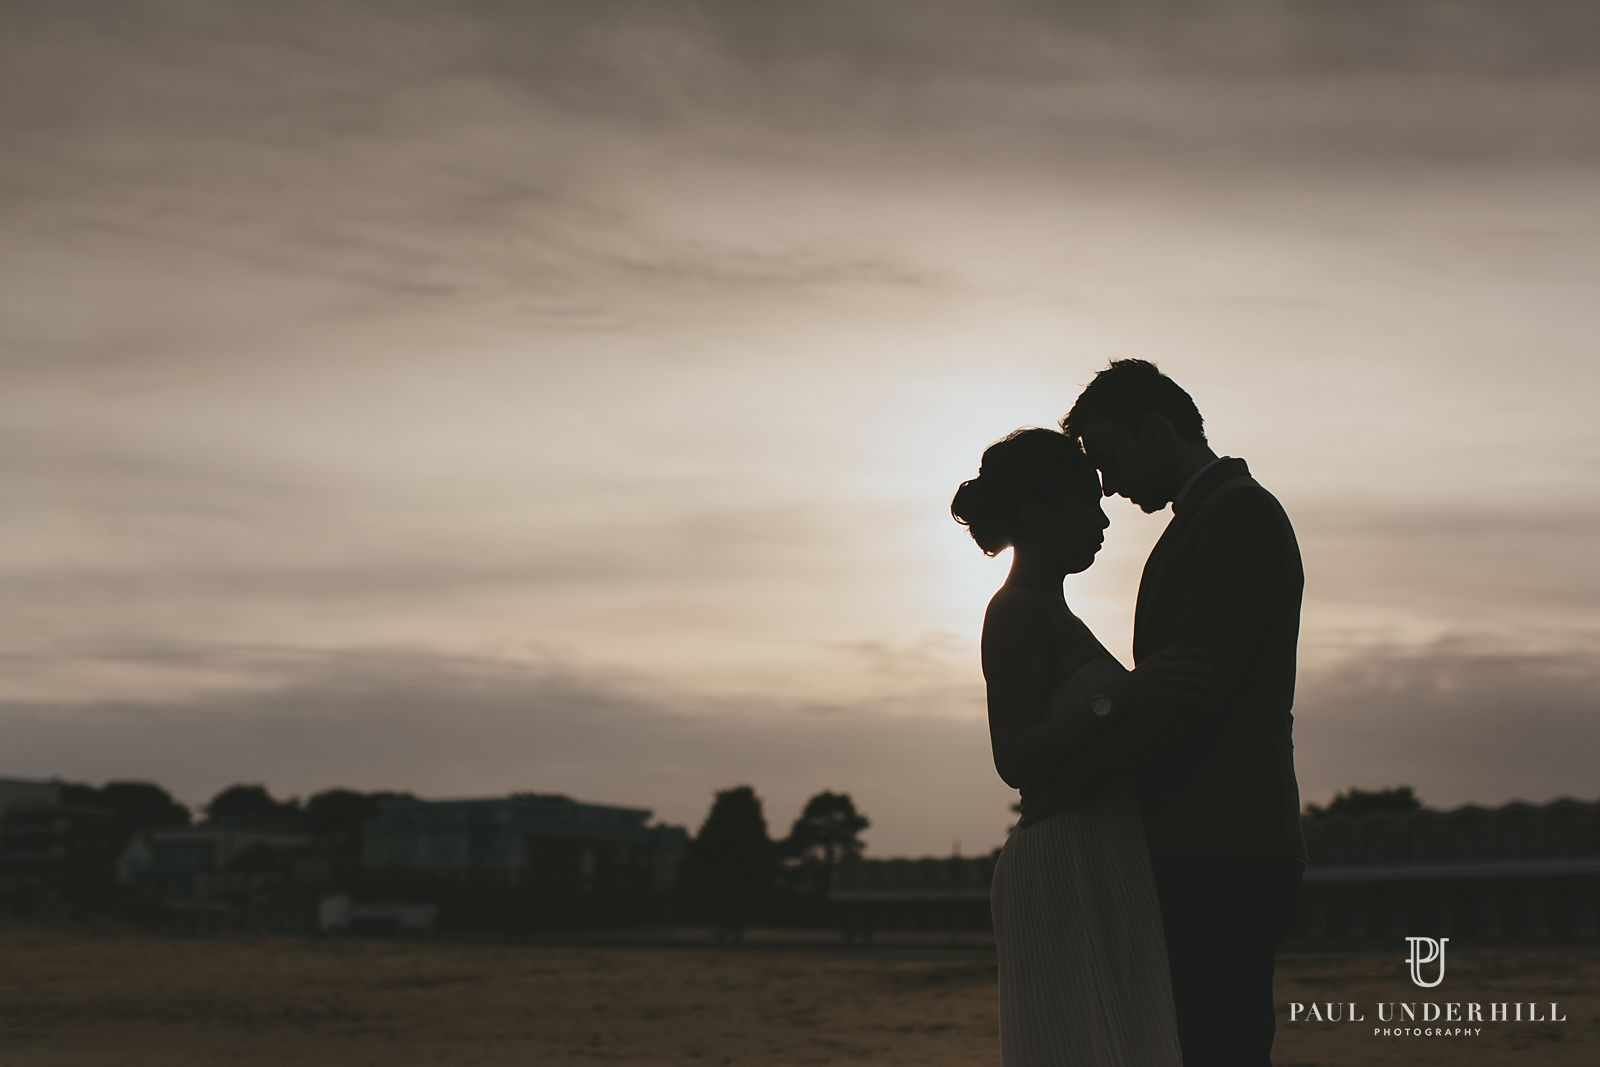 Sunset portrait photography in Poole